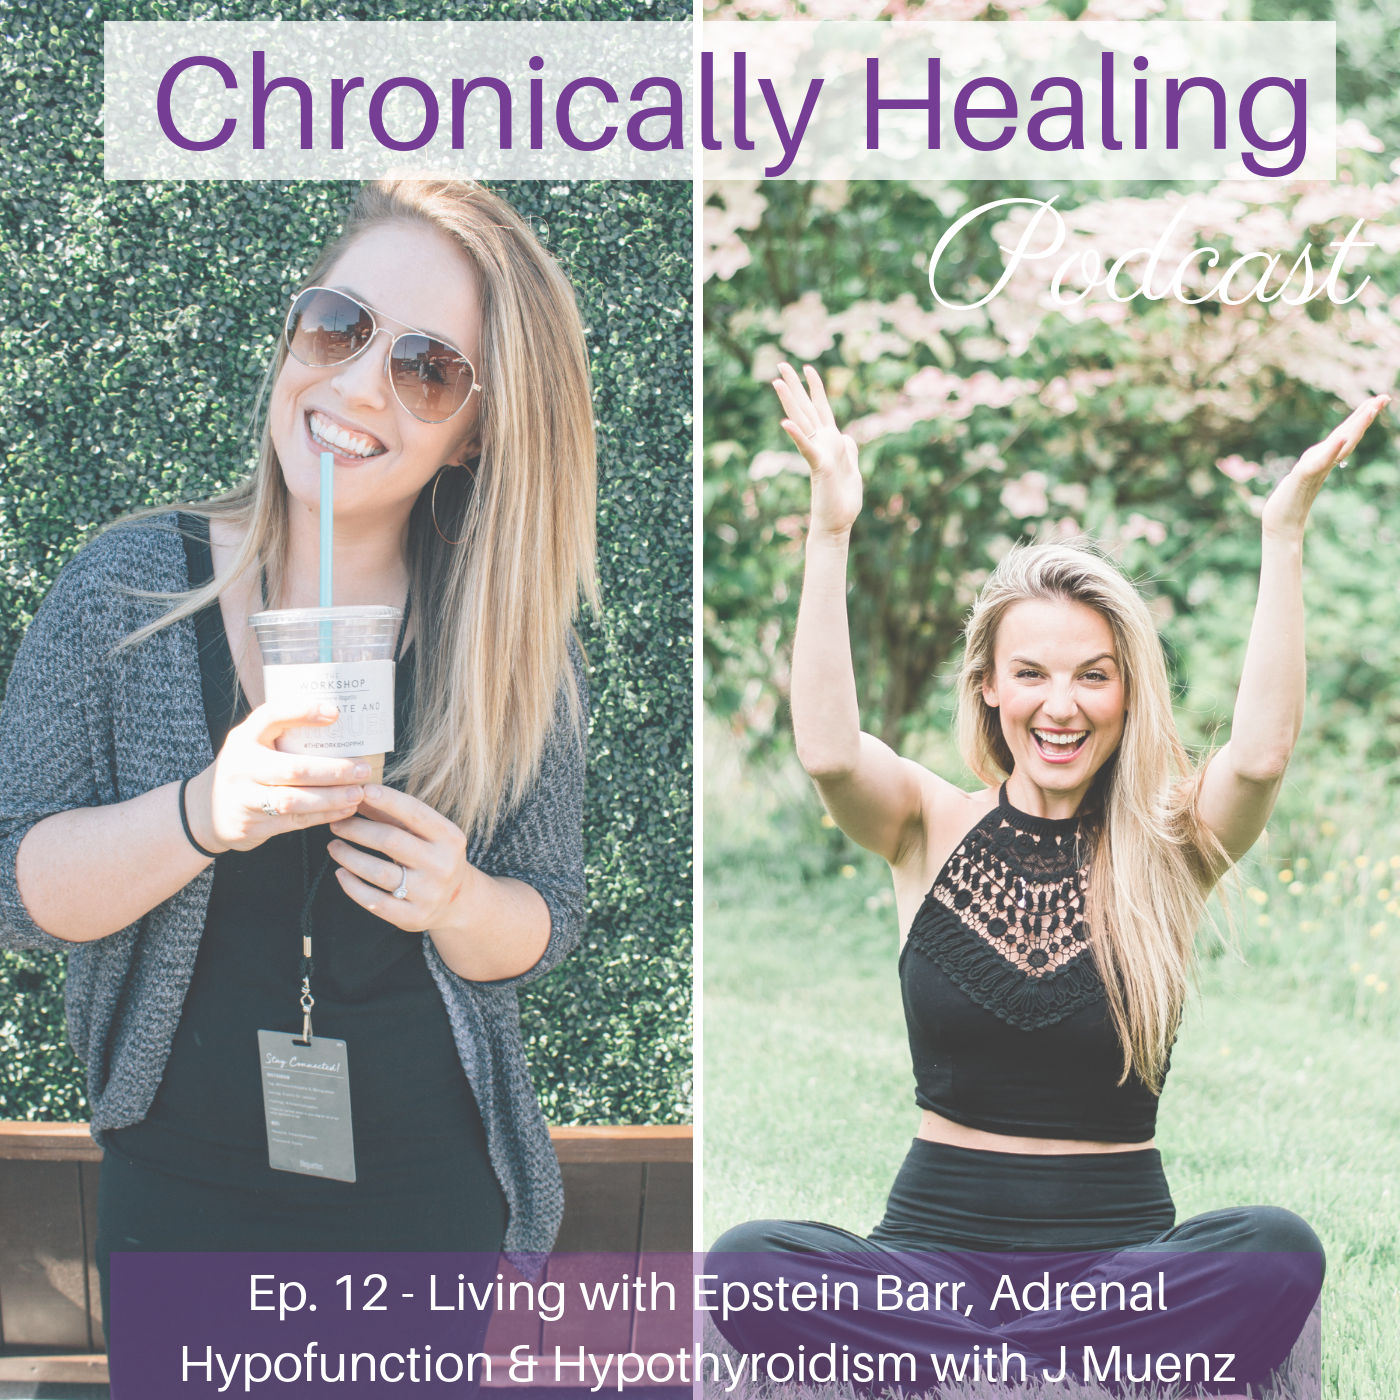 Chronically Healing Podcast Ep. 12 - Epstein Barr, Adrenal Hypofunction & Hypothyroidism with J Muenz